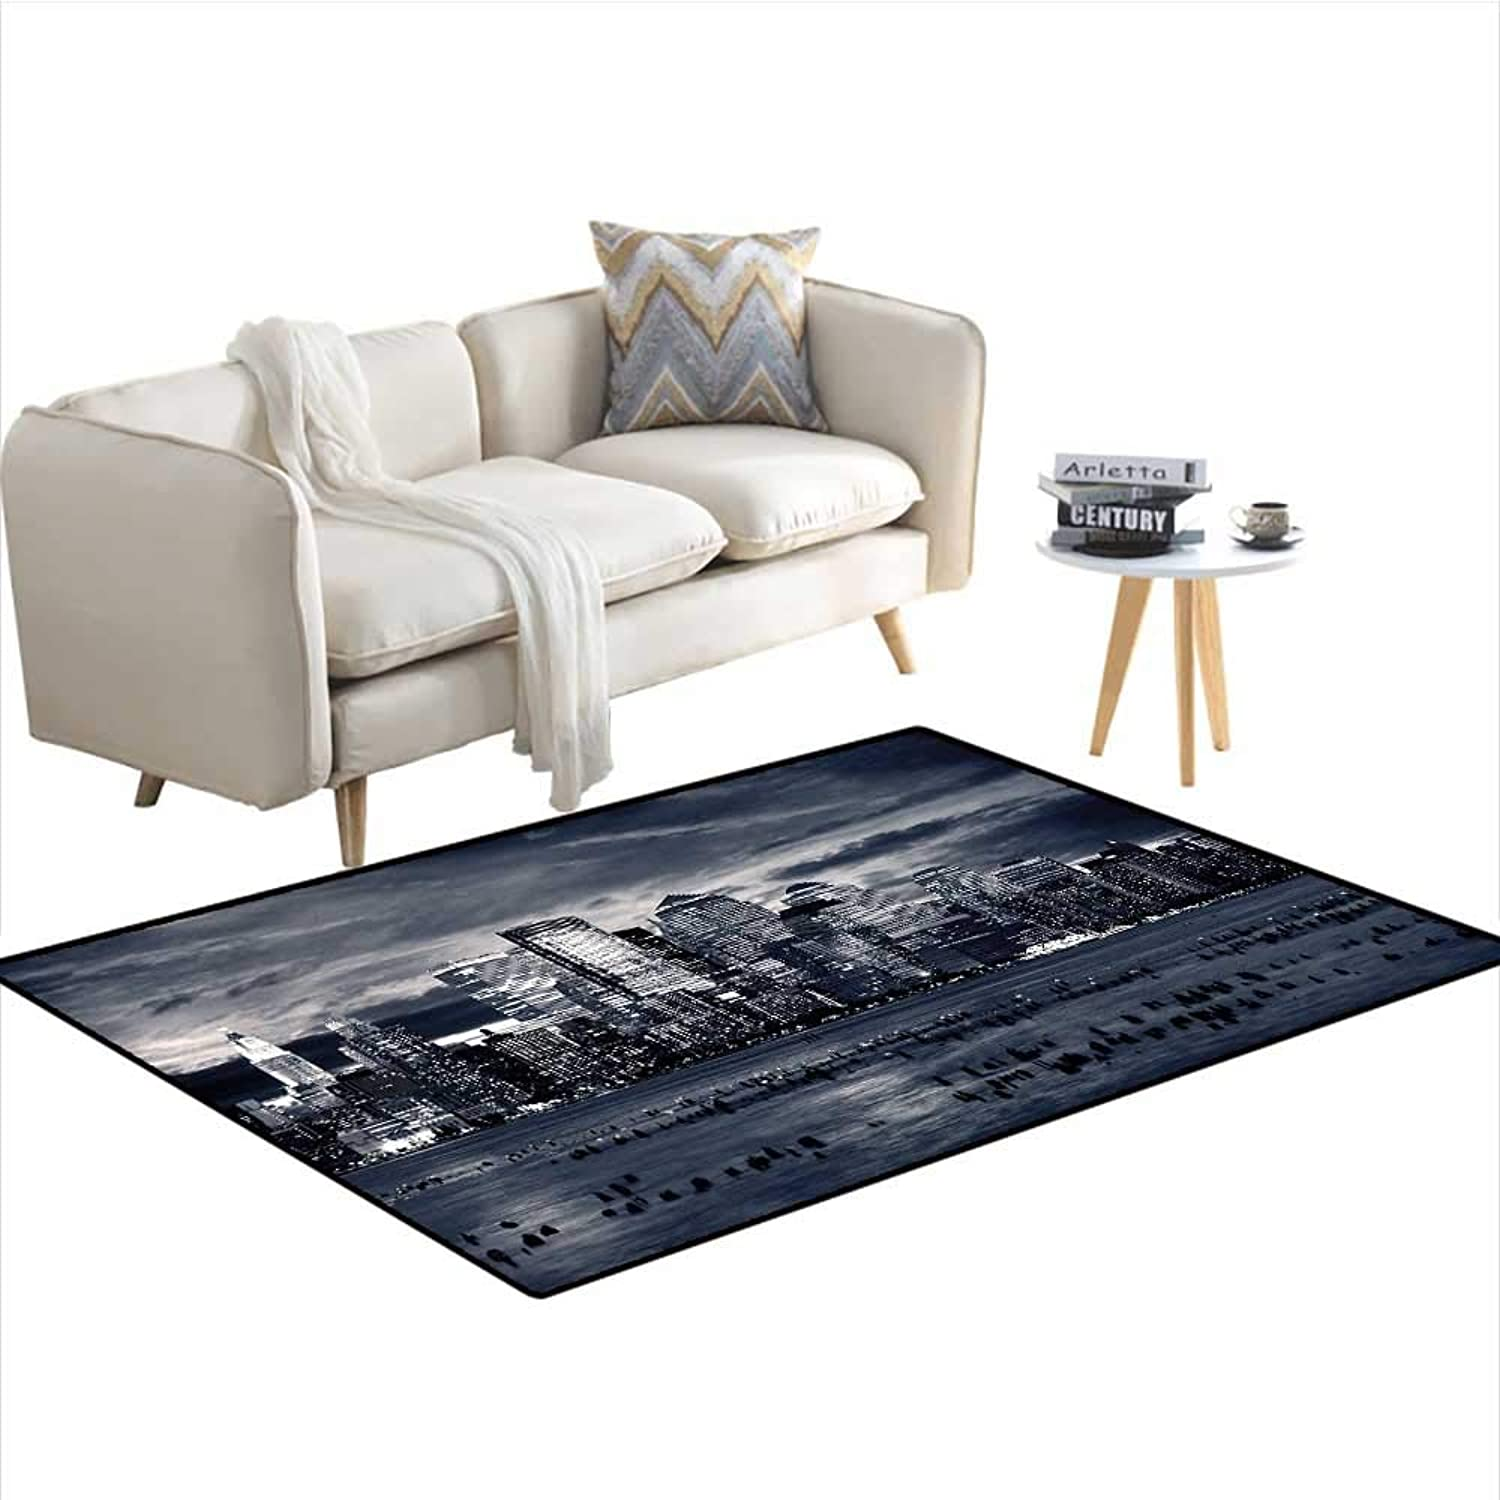 City Indoor Outdoor carpetDramatic View of New York Skyline from Jersey Side Clouds BuildingsAnti-Skid Charcoal Grey Black White W40 x L63